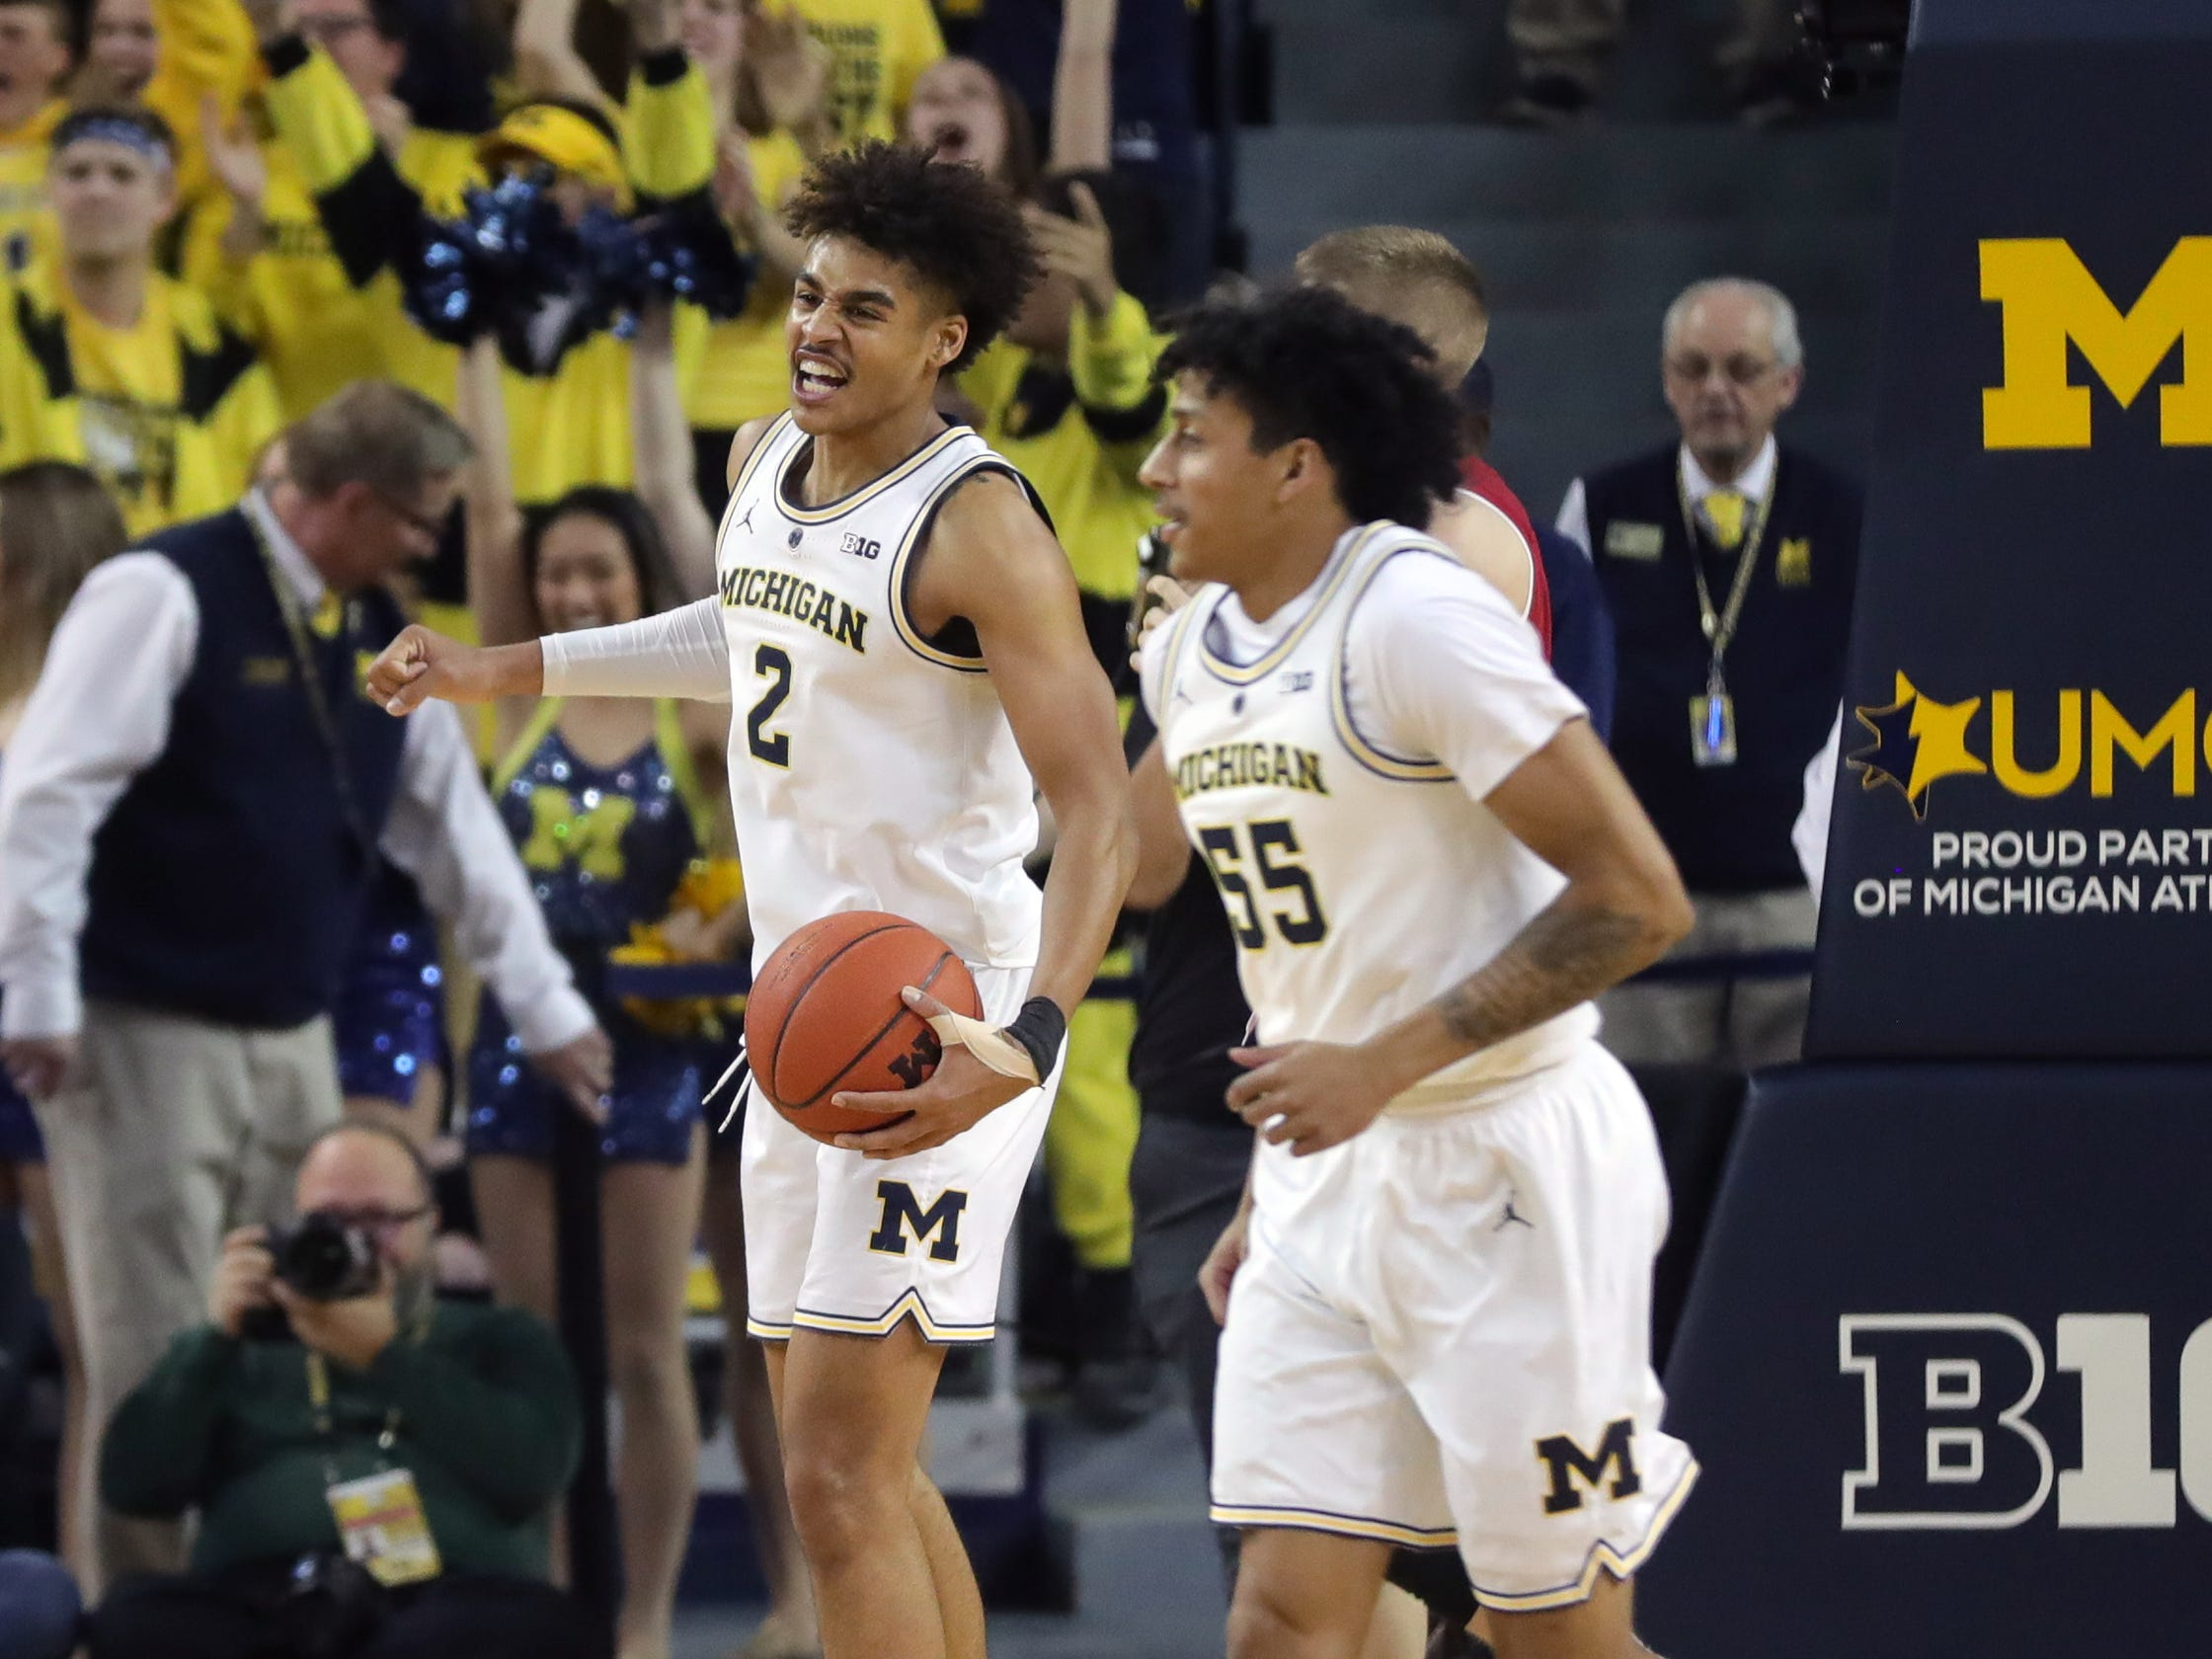 Michigan guards Jordan Poole and Eli Brooks celebrate the 61-52 win against Wisconsin, Saturday, Feb. 9, 2019 at the Crisler Center in Ann Arbor.